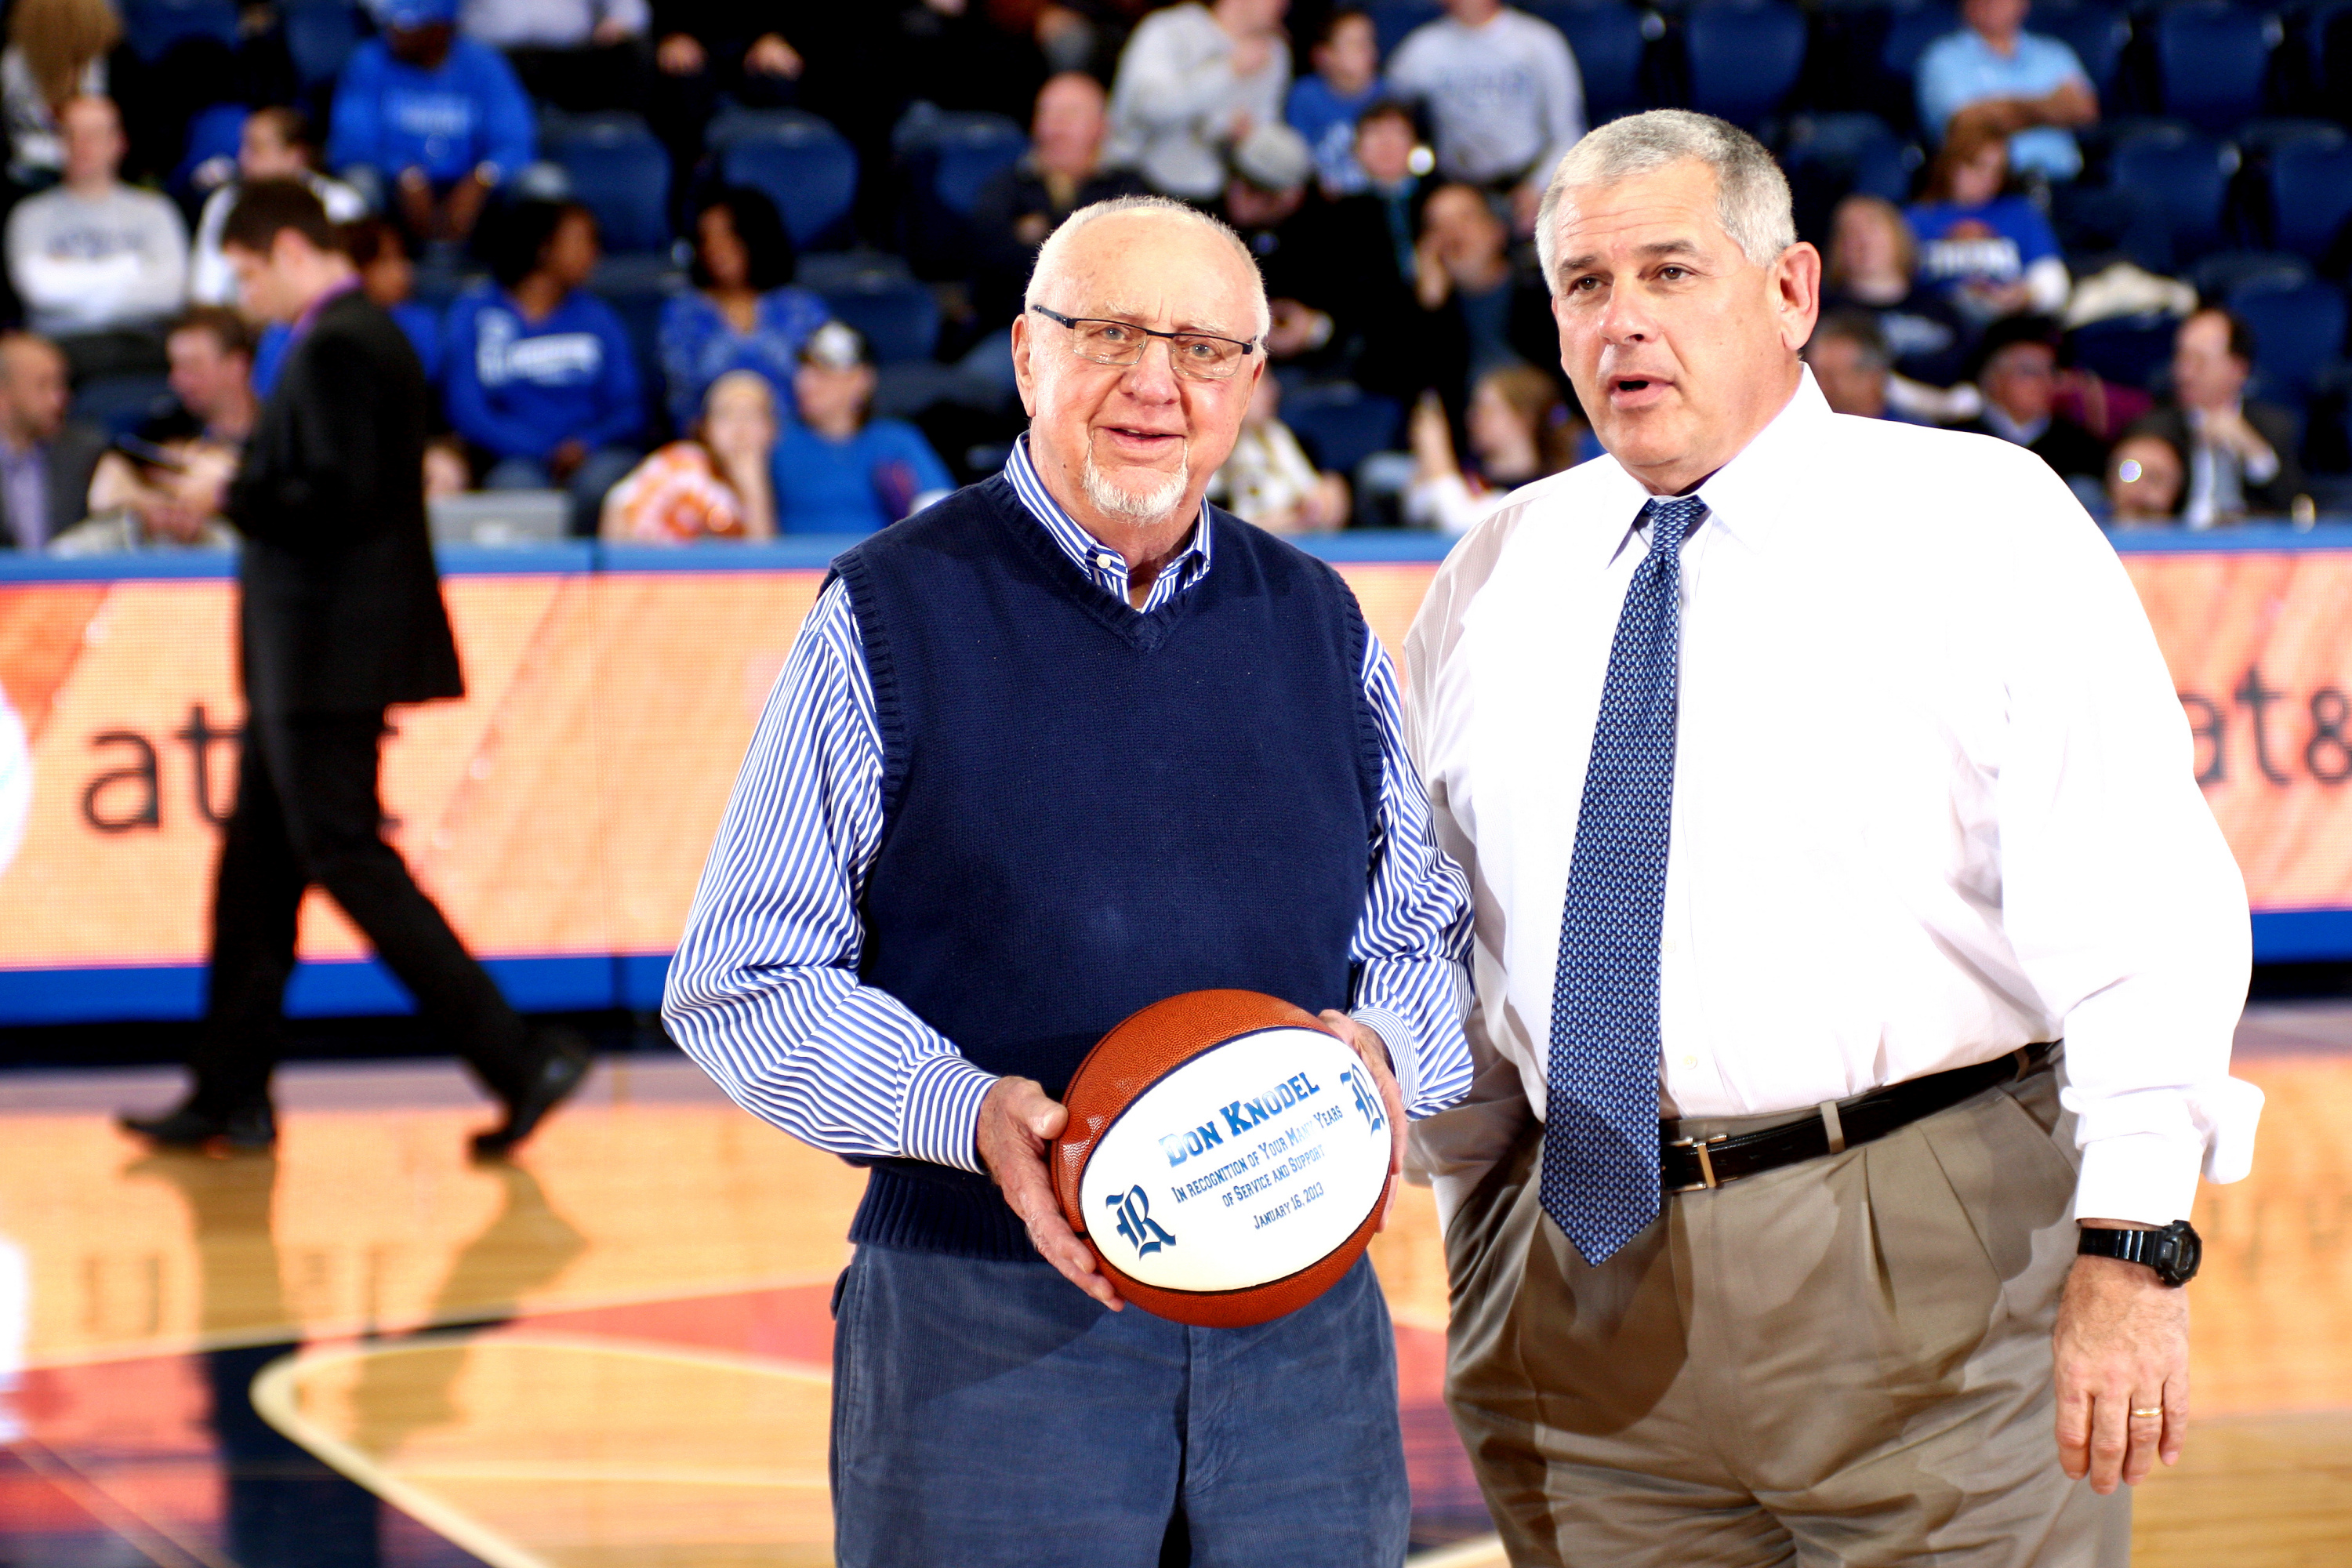 Rice Athletics honored recently retired former coach and